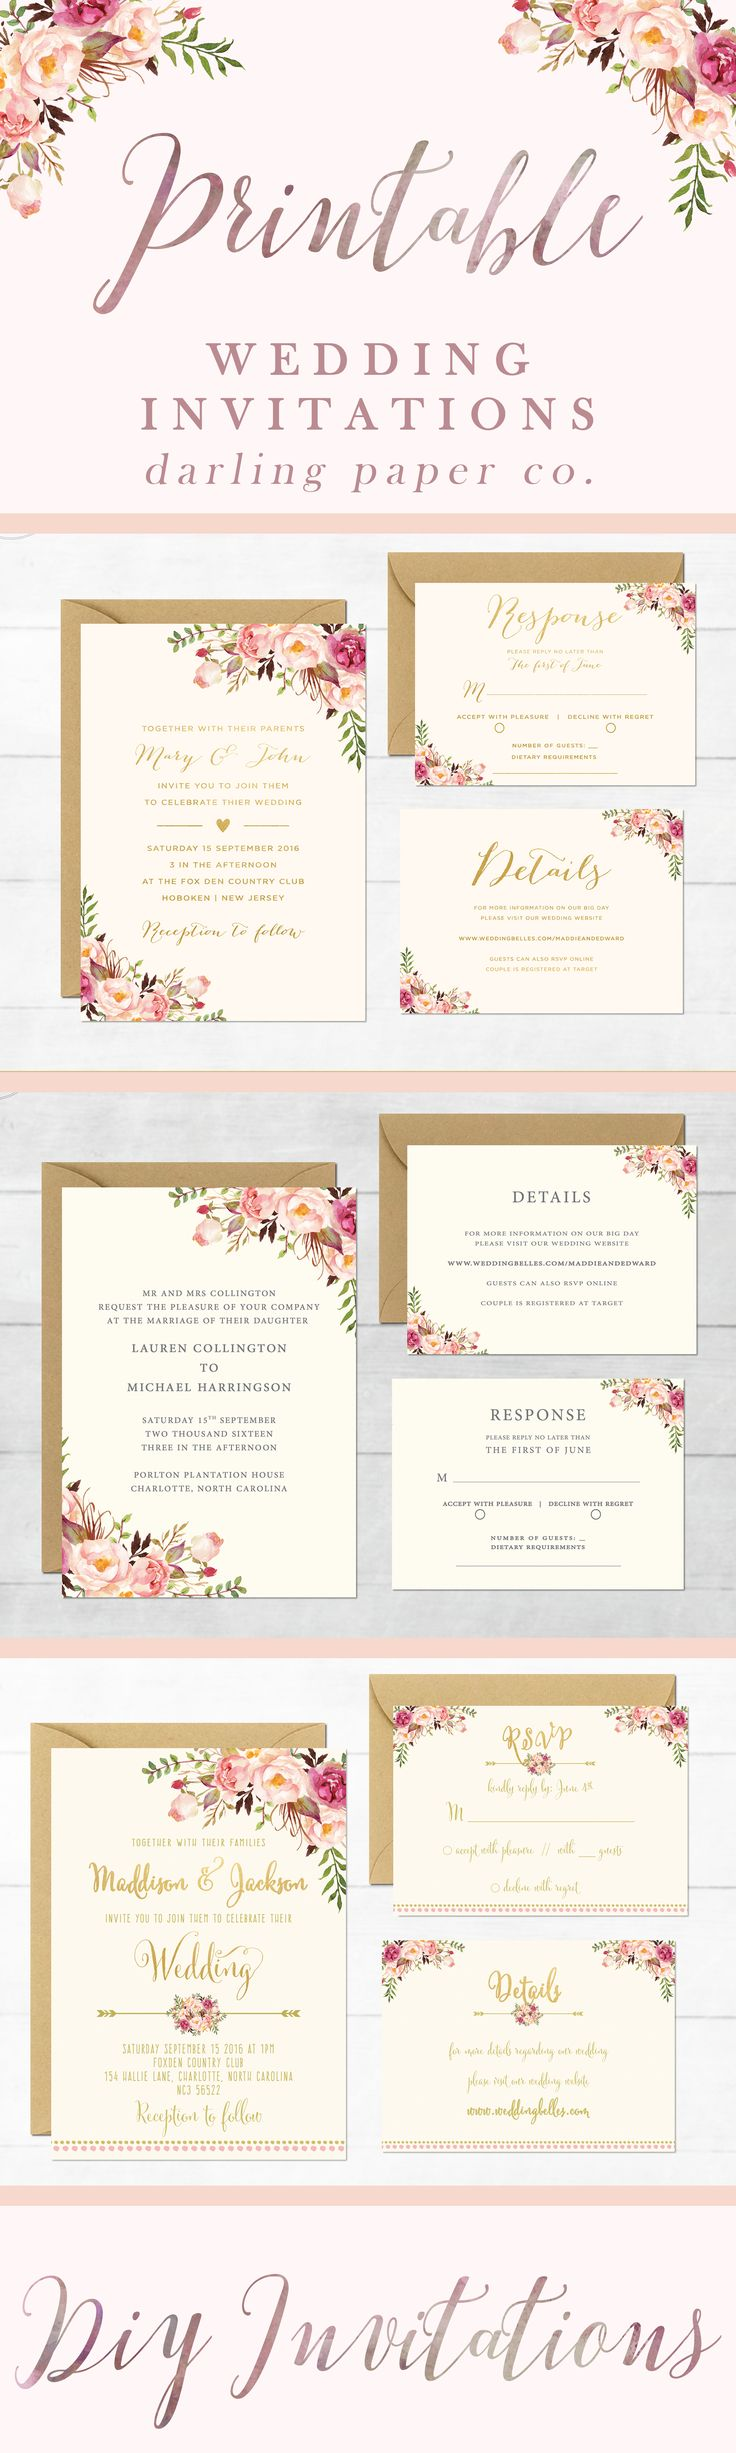 The 25 Best Diy Wedding Invitations Templates Ideas On Pinterest